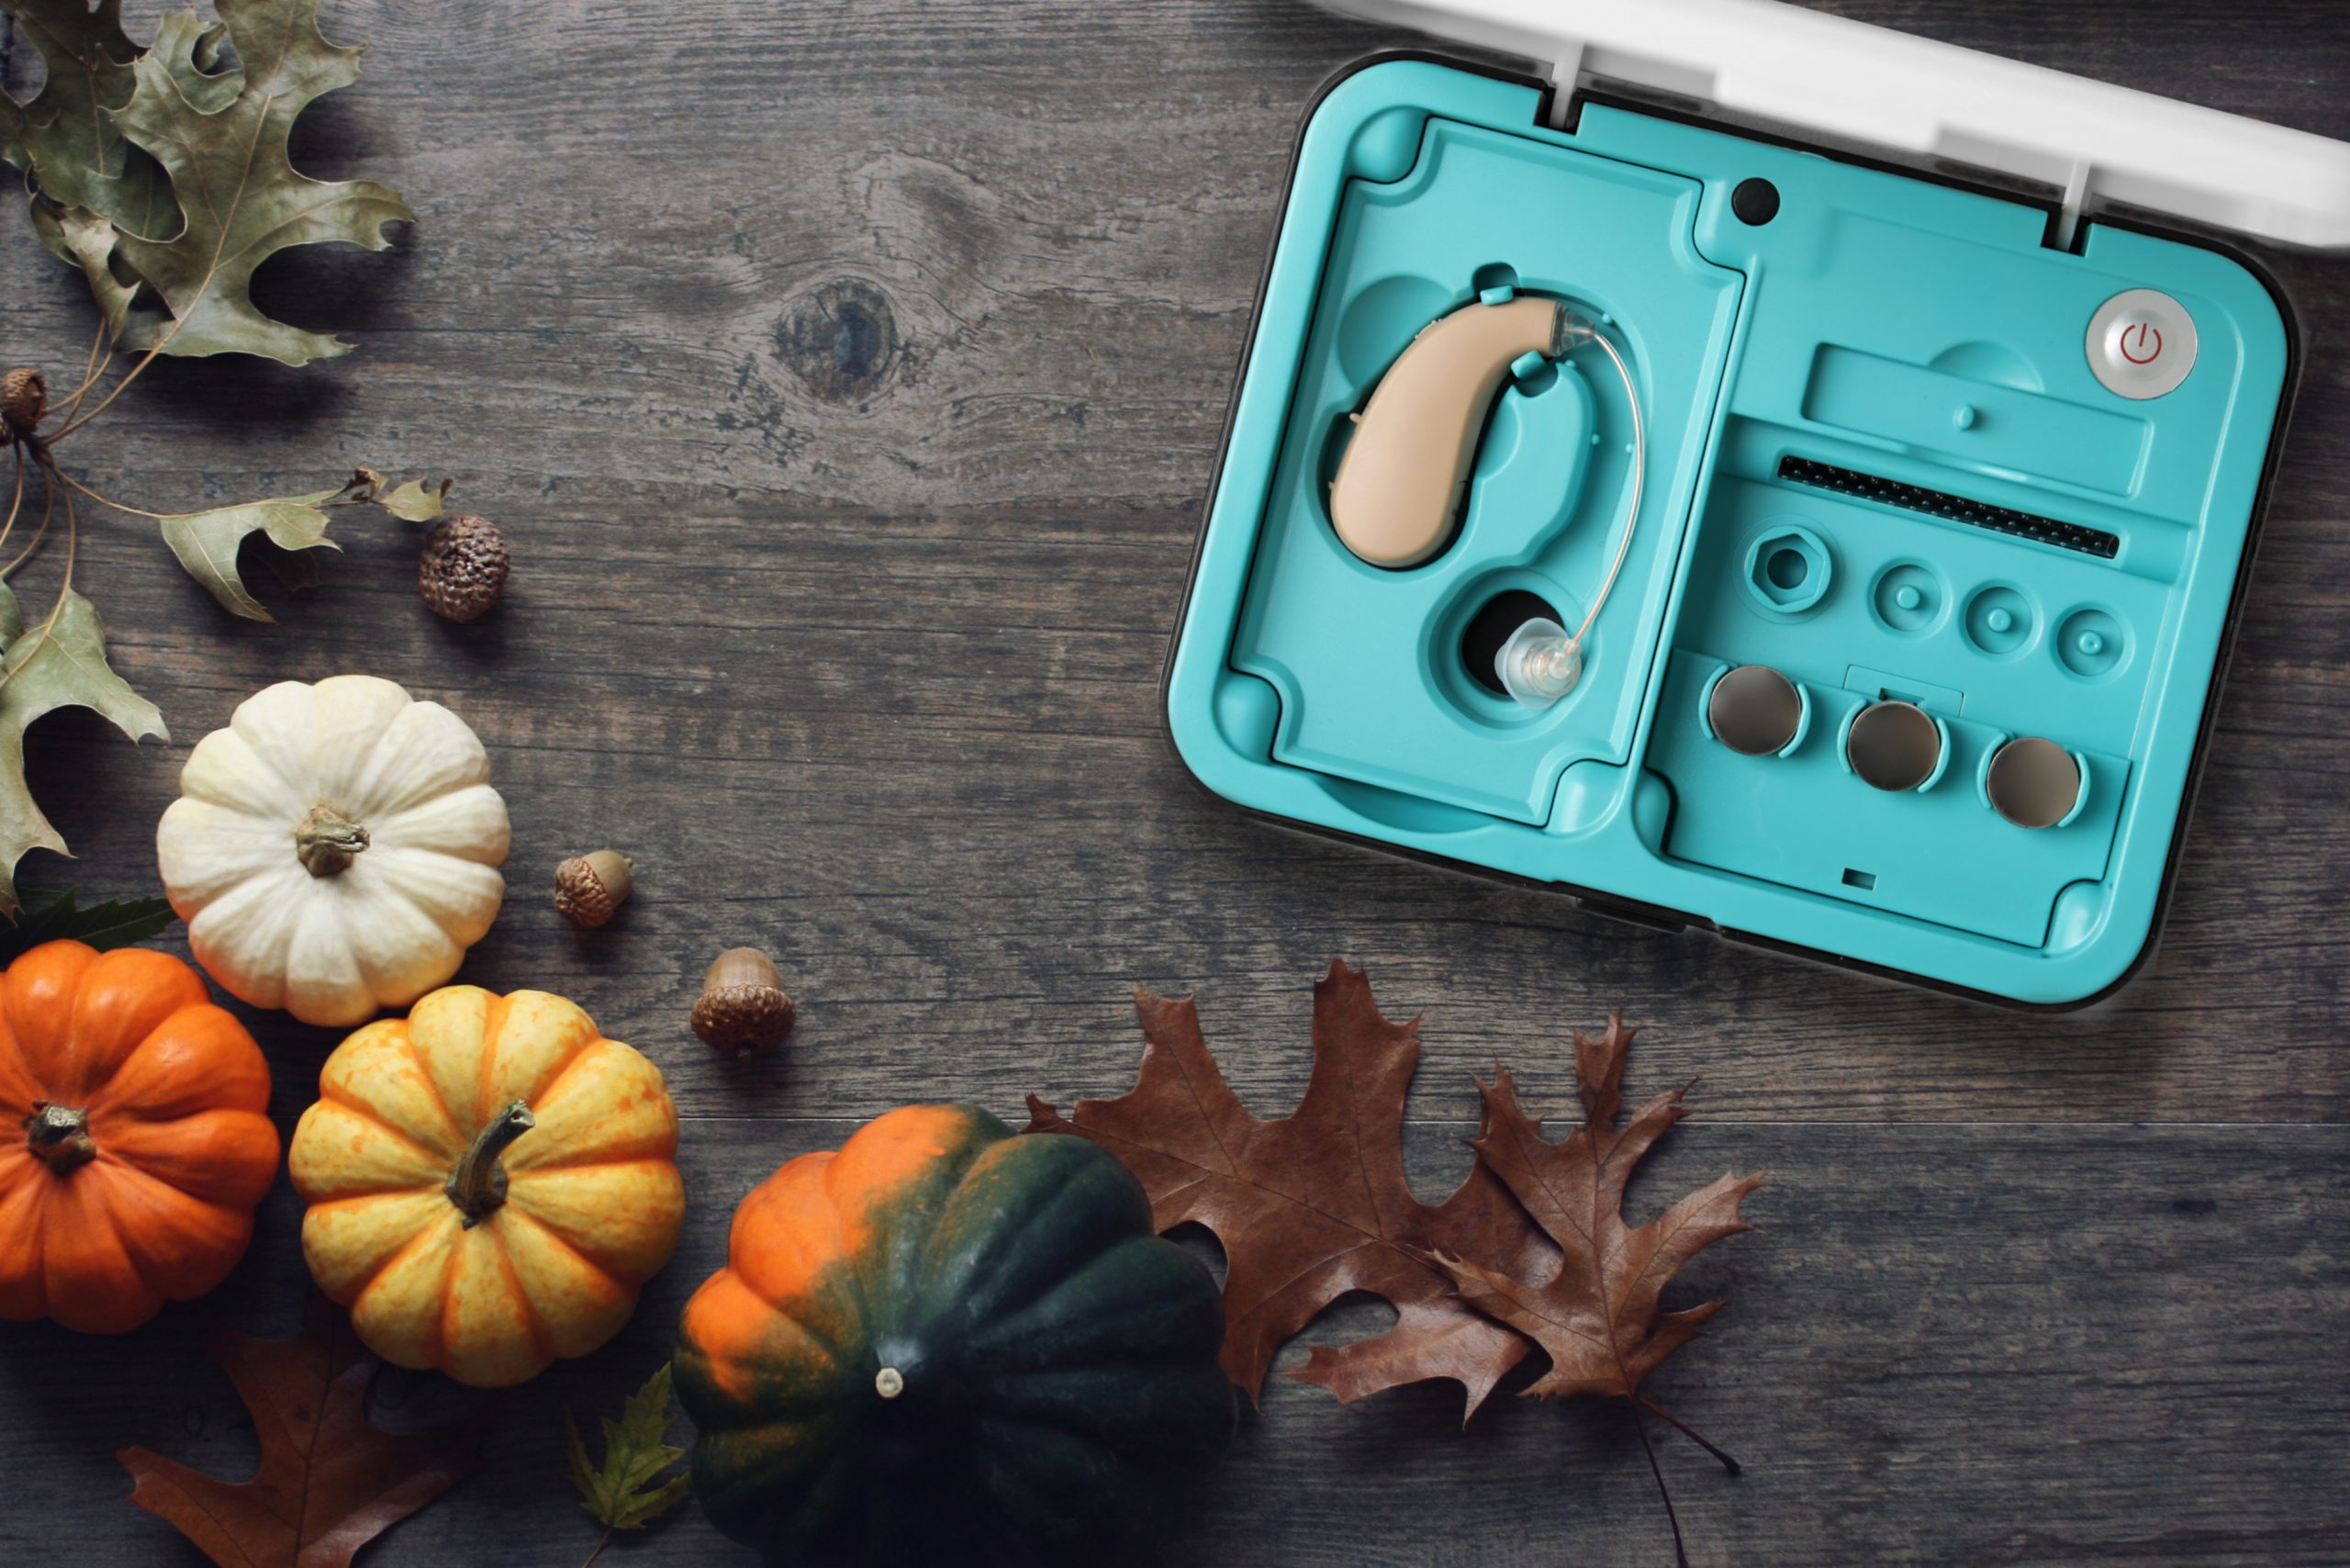 A hearing aid in its box on a table decorated for Thanksgiving.